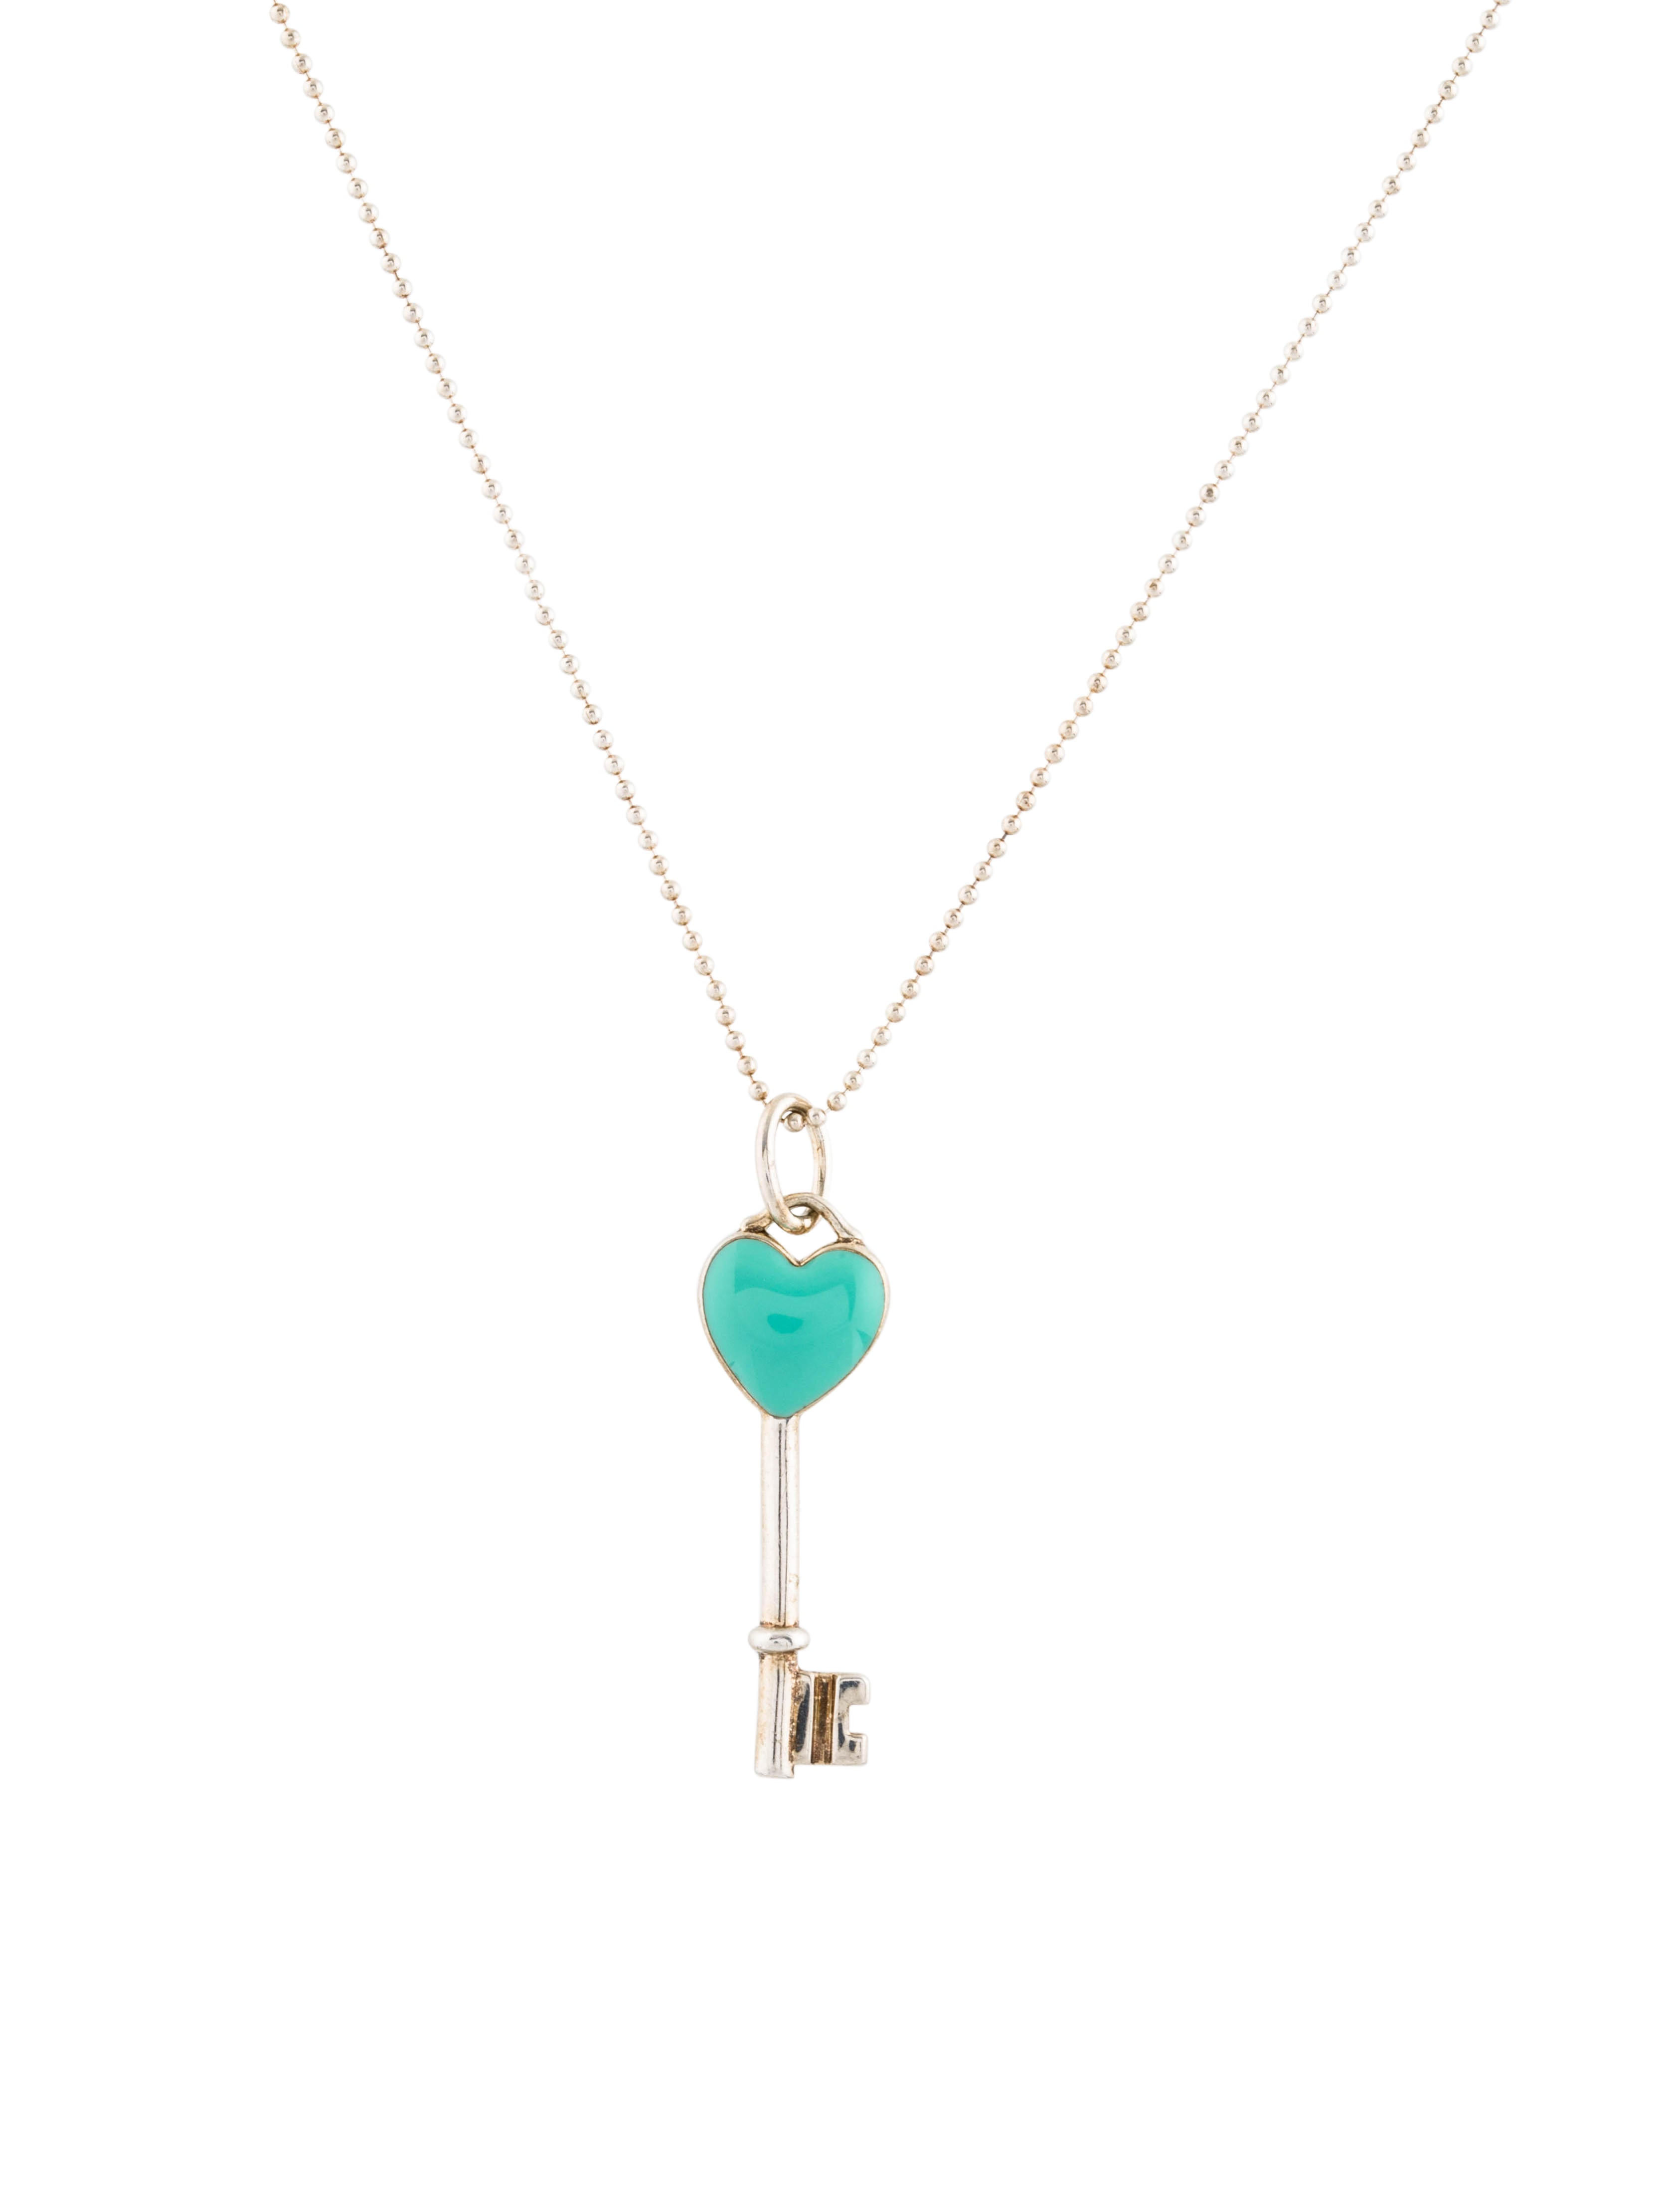 Tiffany co heart key pendant necklace necklaces tif73876 heart key pendant necklace aloadofball Image collections